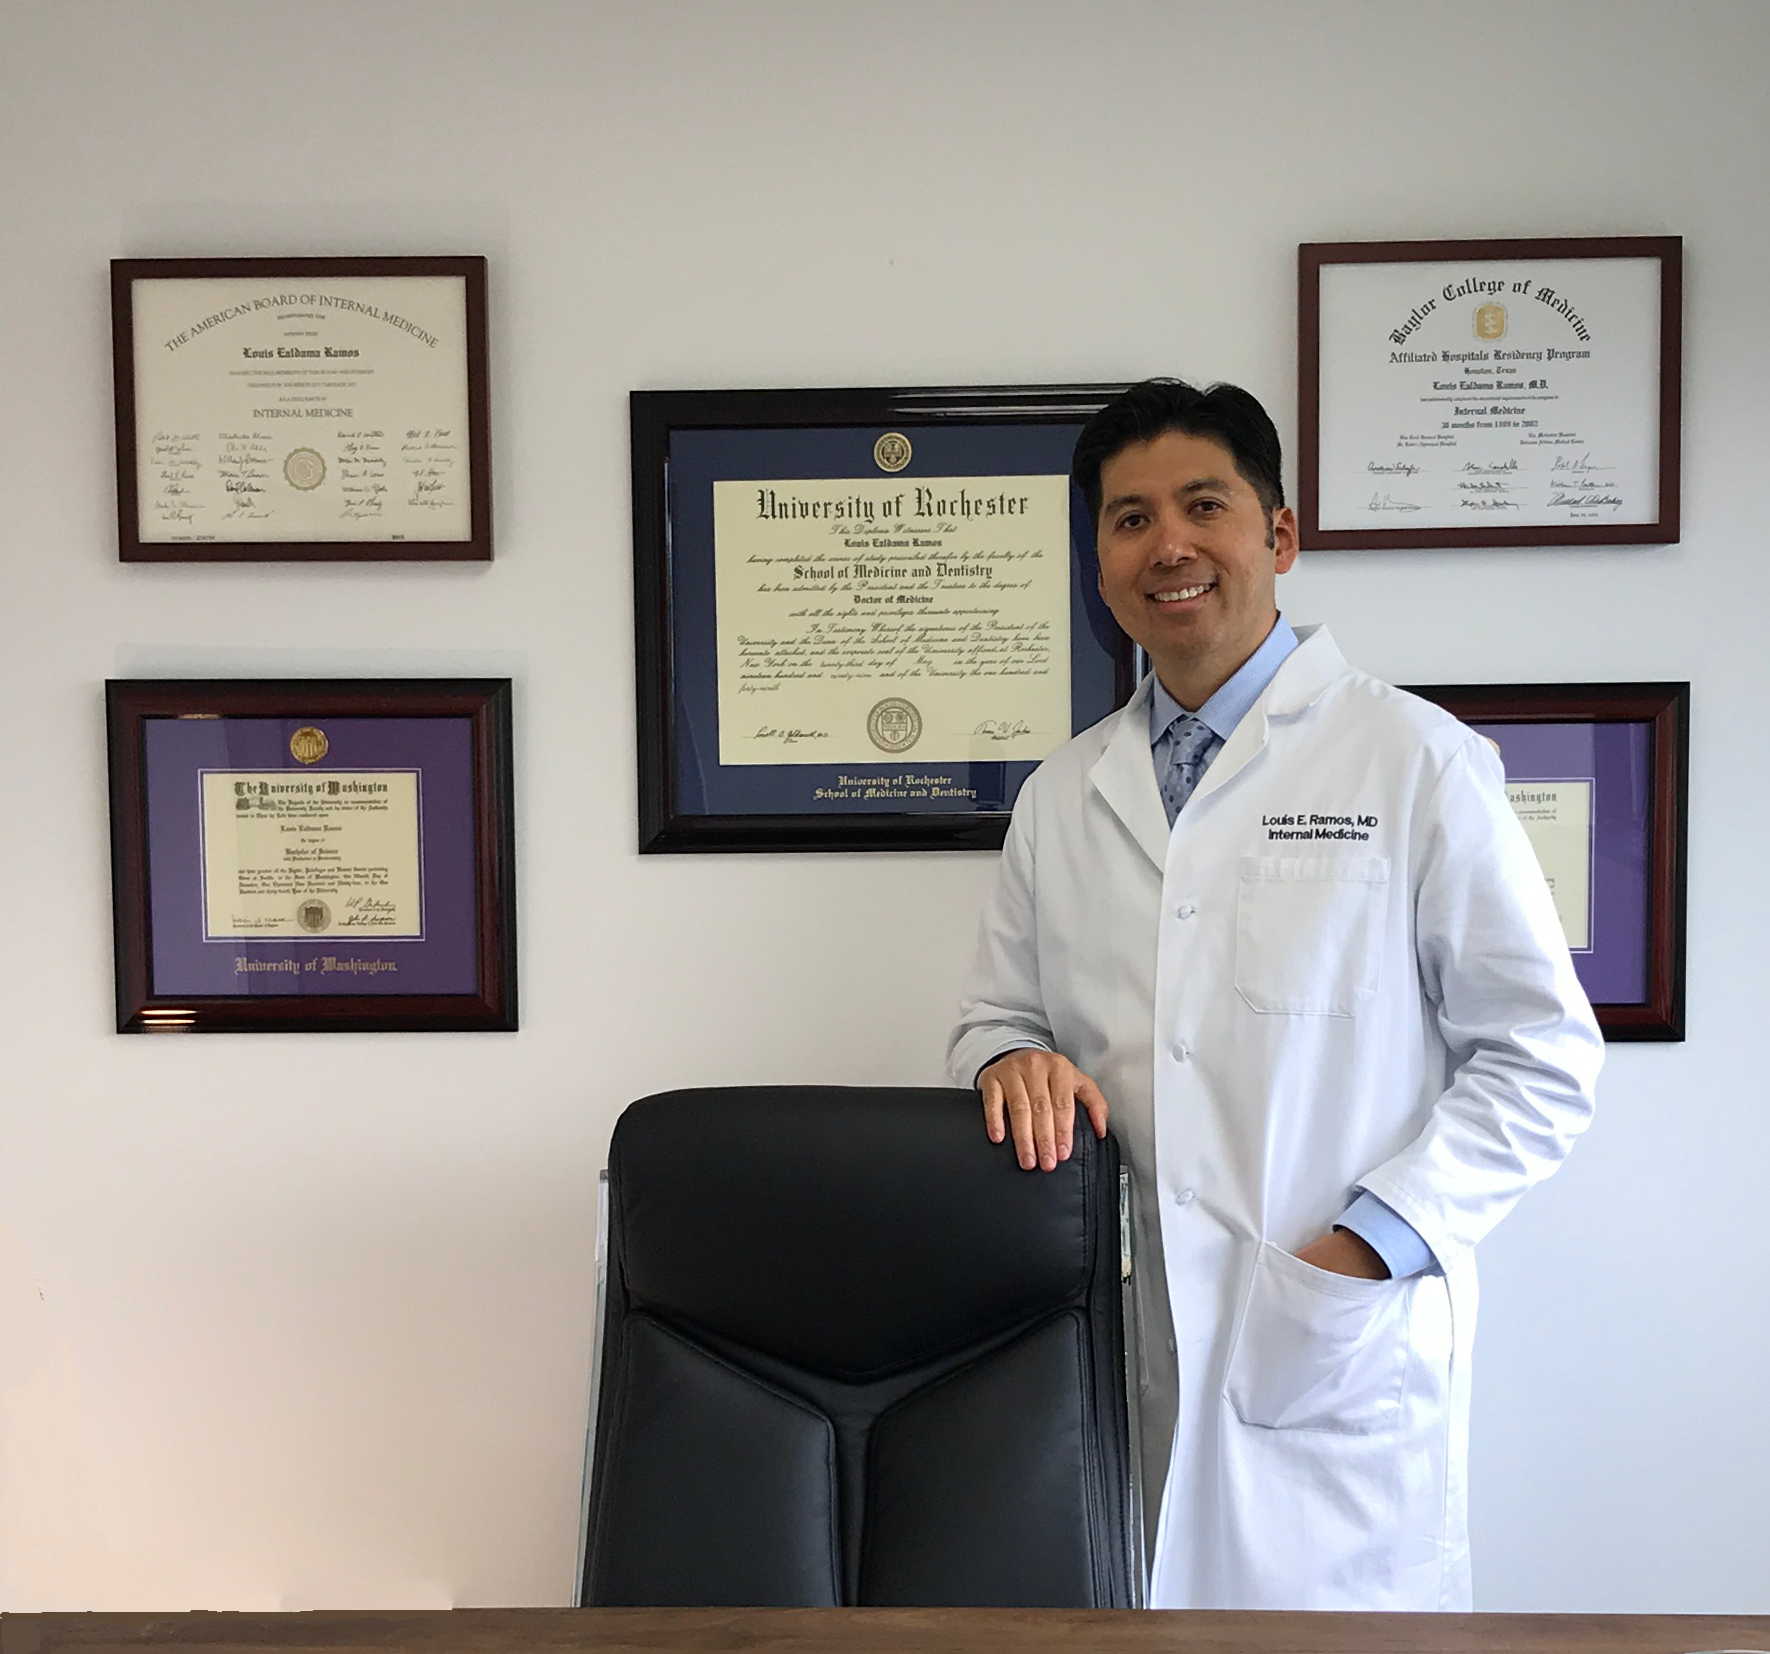 Louis E. Ramos, MD Direct Primary Care Physician Austin Medical Partners in Austin, TX